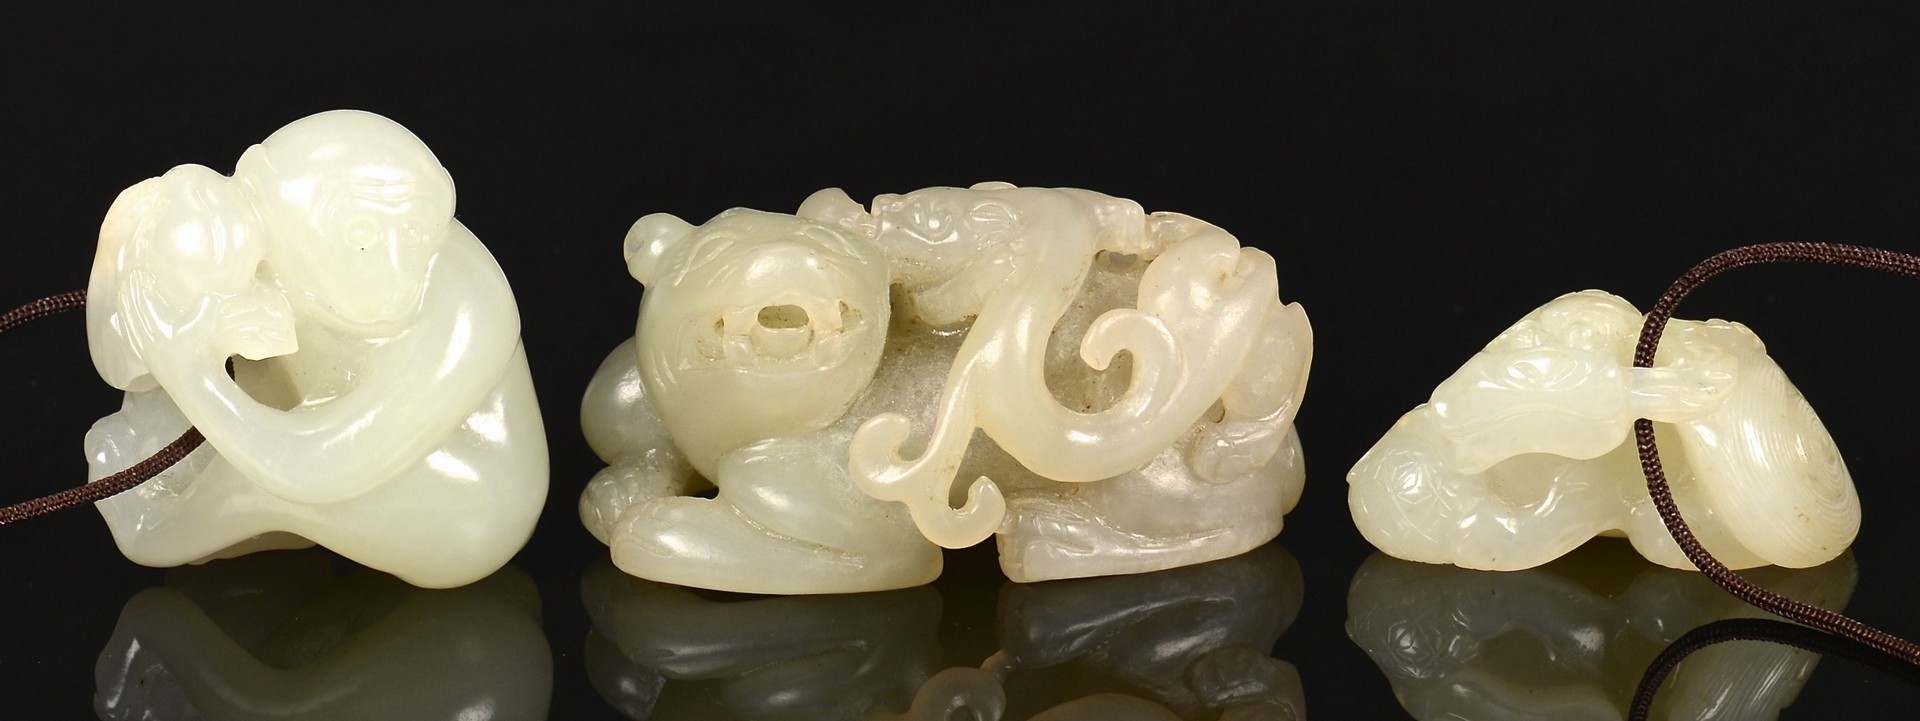 Lot 2: 3 Chinese Jade Animal Carvings